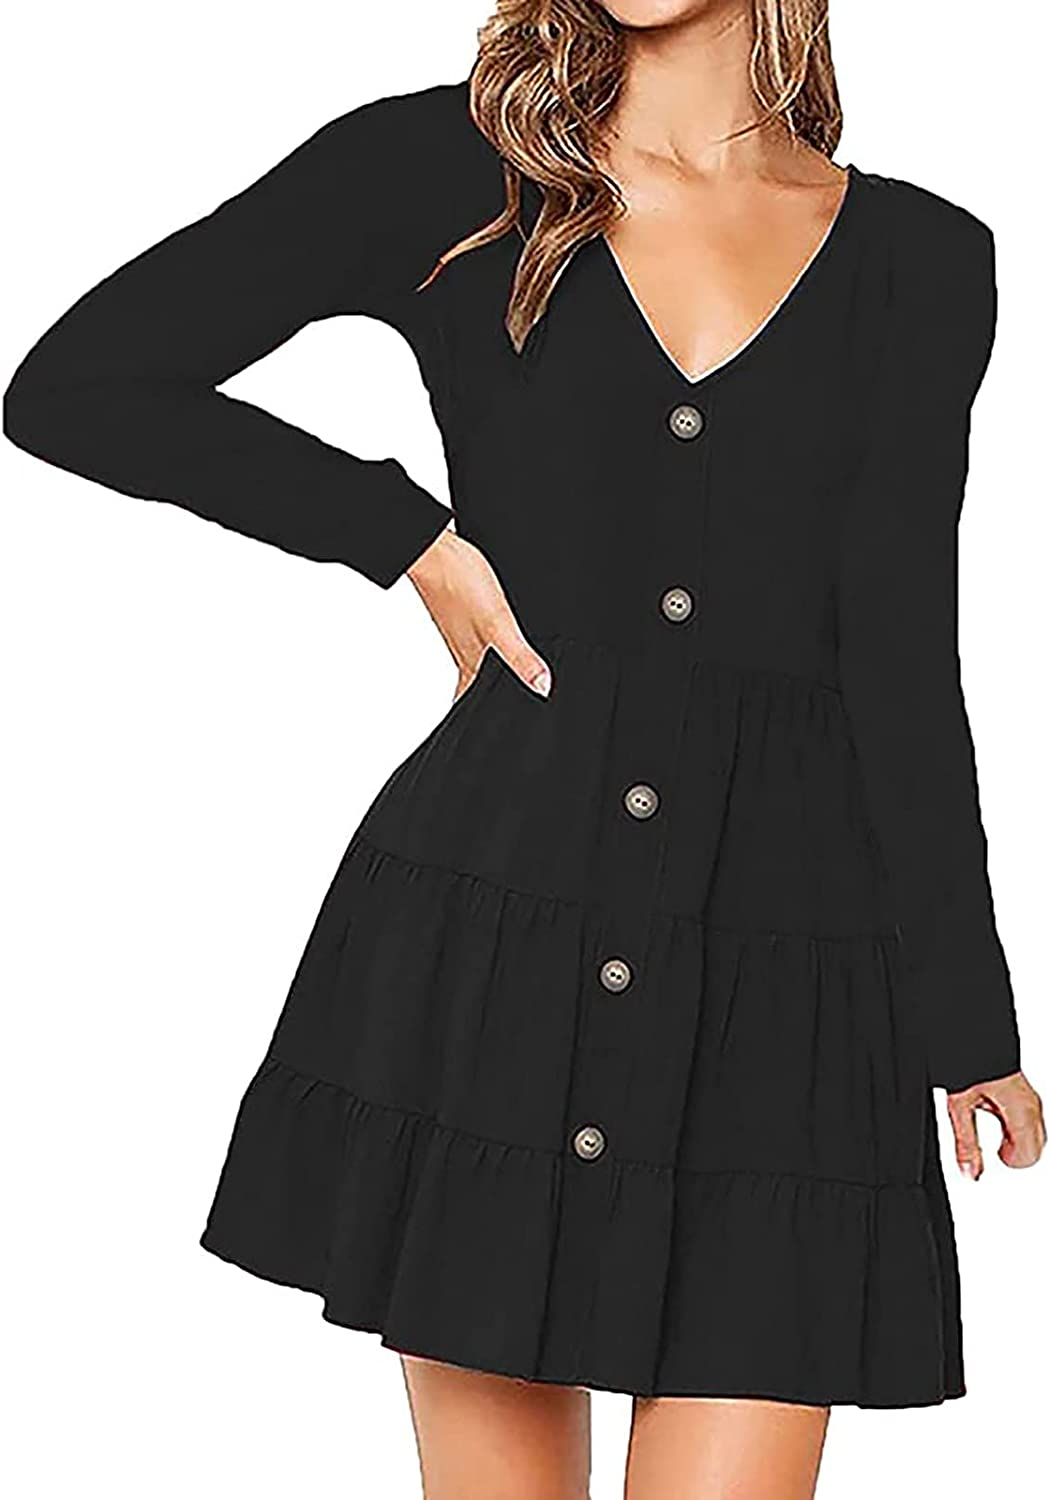 FRSH MNT Women's Sexy V-Neck Dress Casual Solid Color Single Breasted Short Dress Fall Long Sleeve Party Dresses